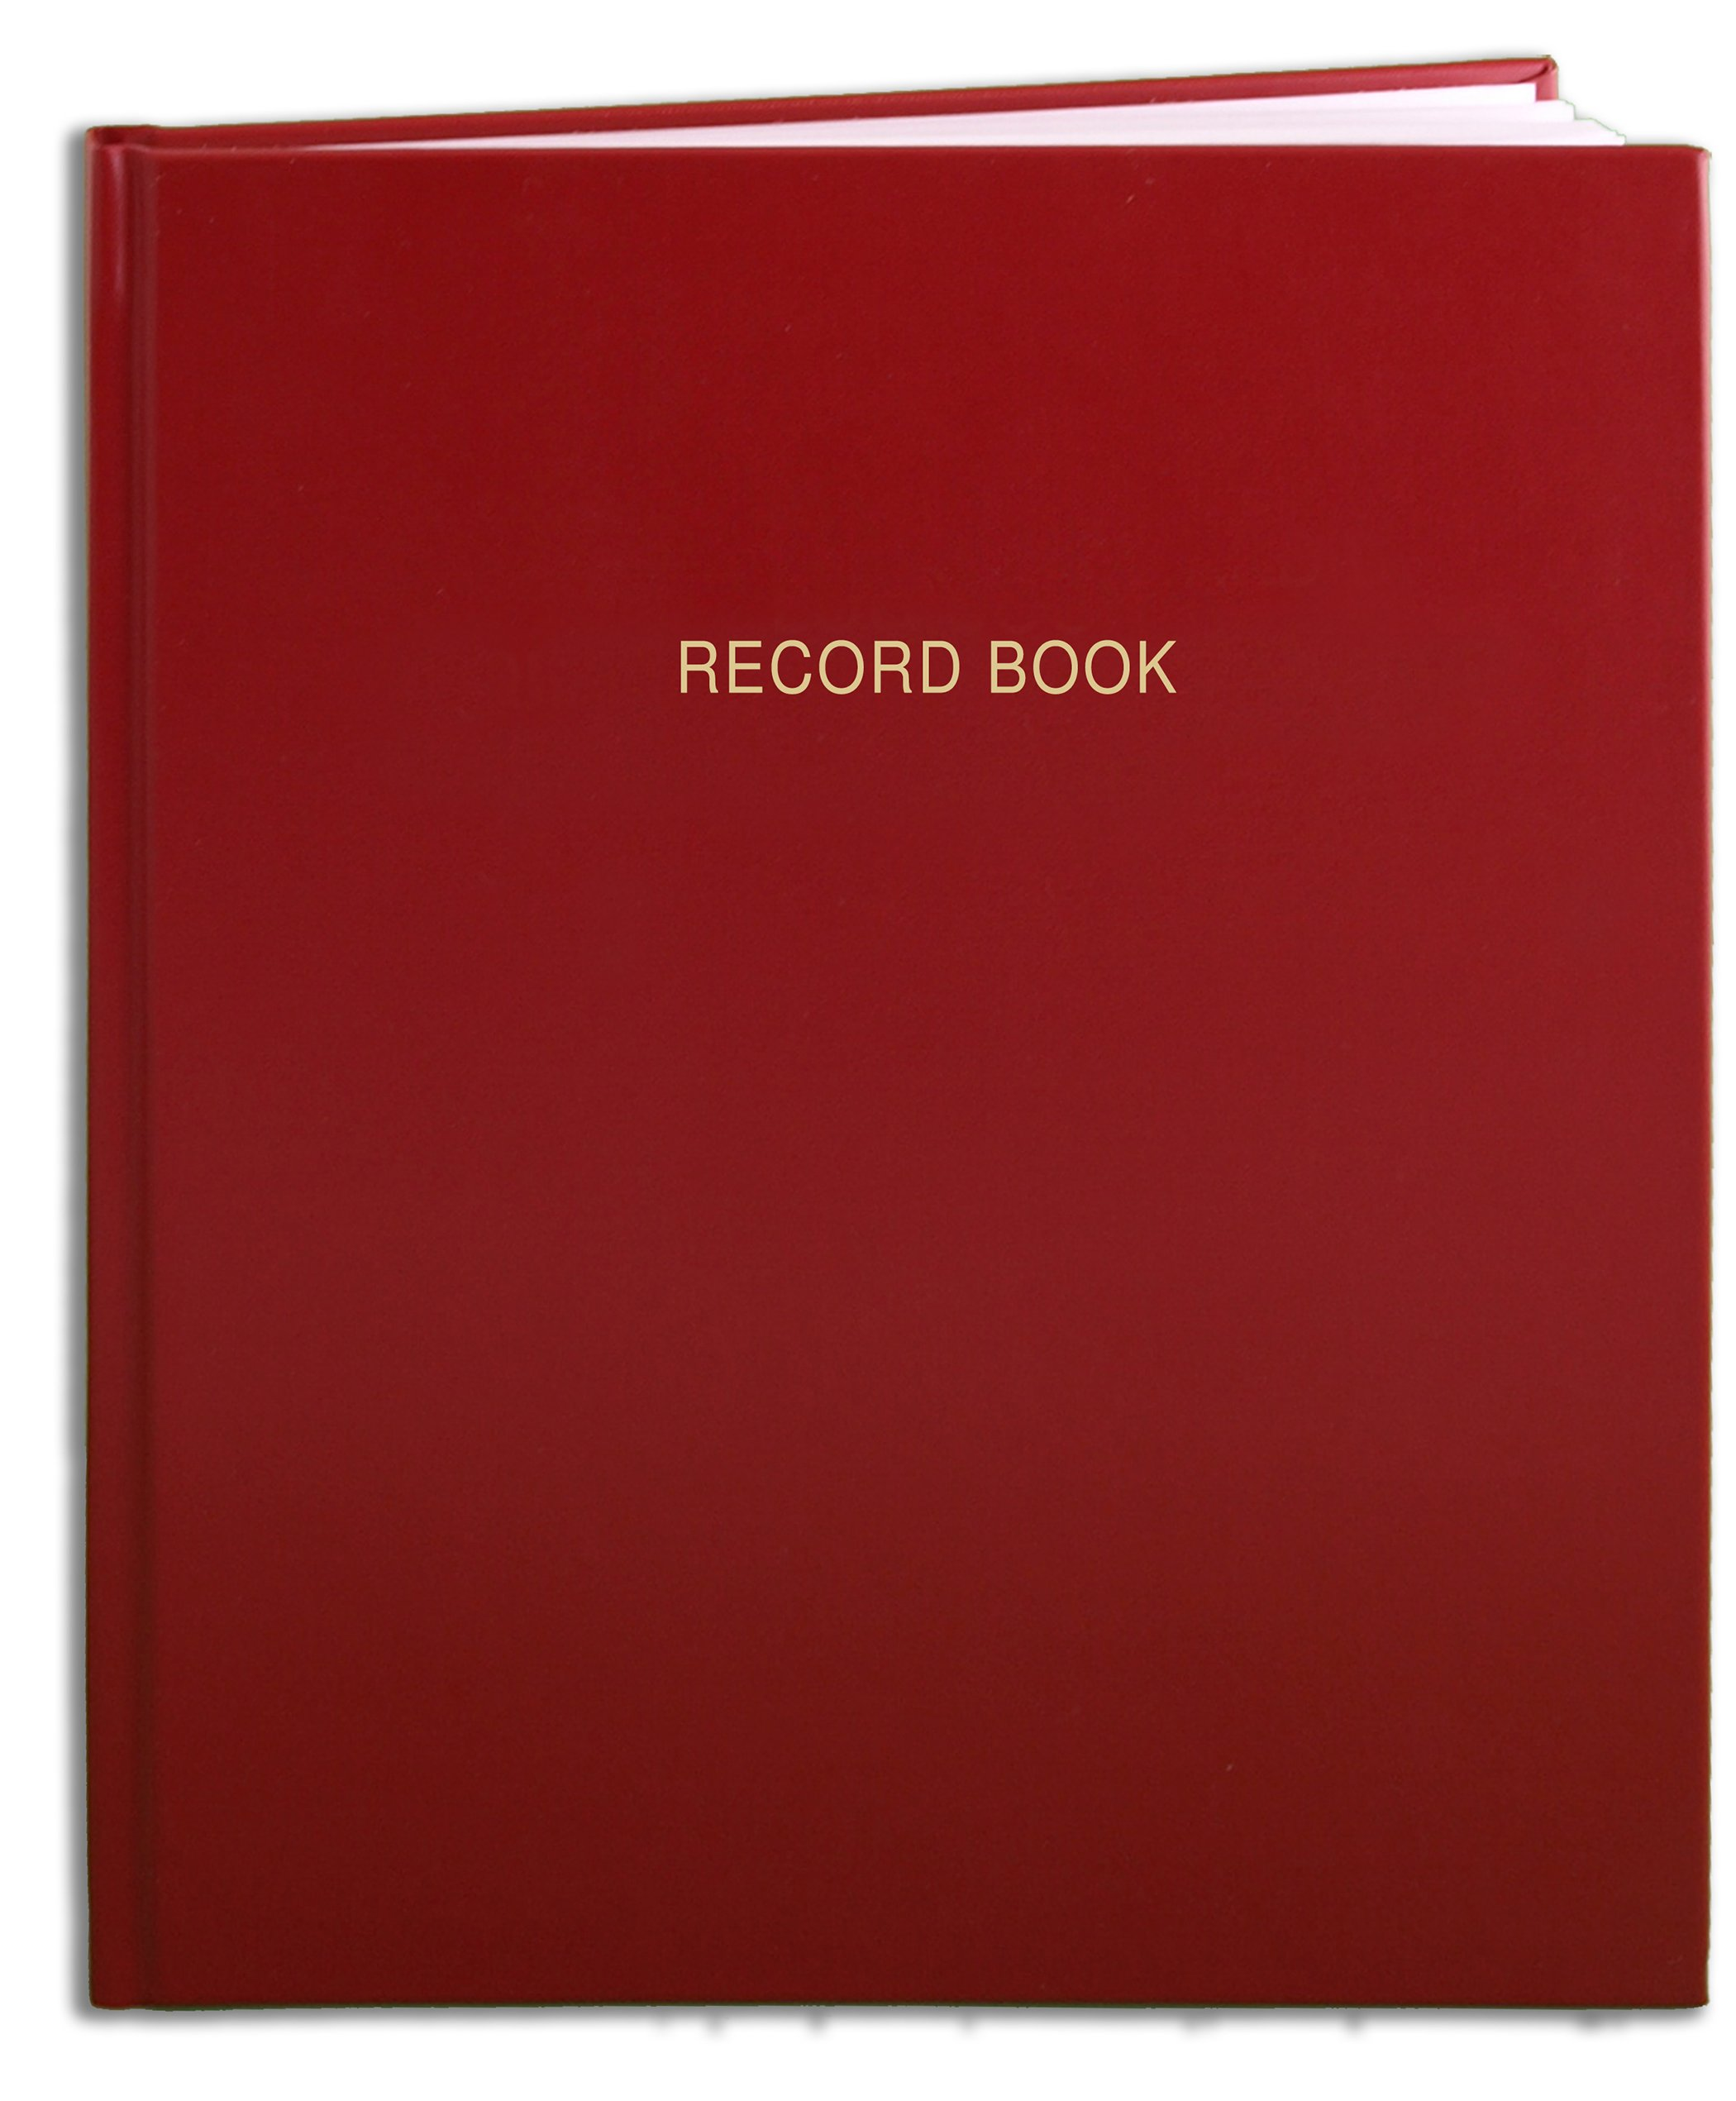 BookFactory Red Record Book/Record Notebook - 240 Pages 8'' x 10'' Red Cover Smyth Sewn Hardbound (RA-240-SRS-A-LRT15) by BookFactory